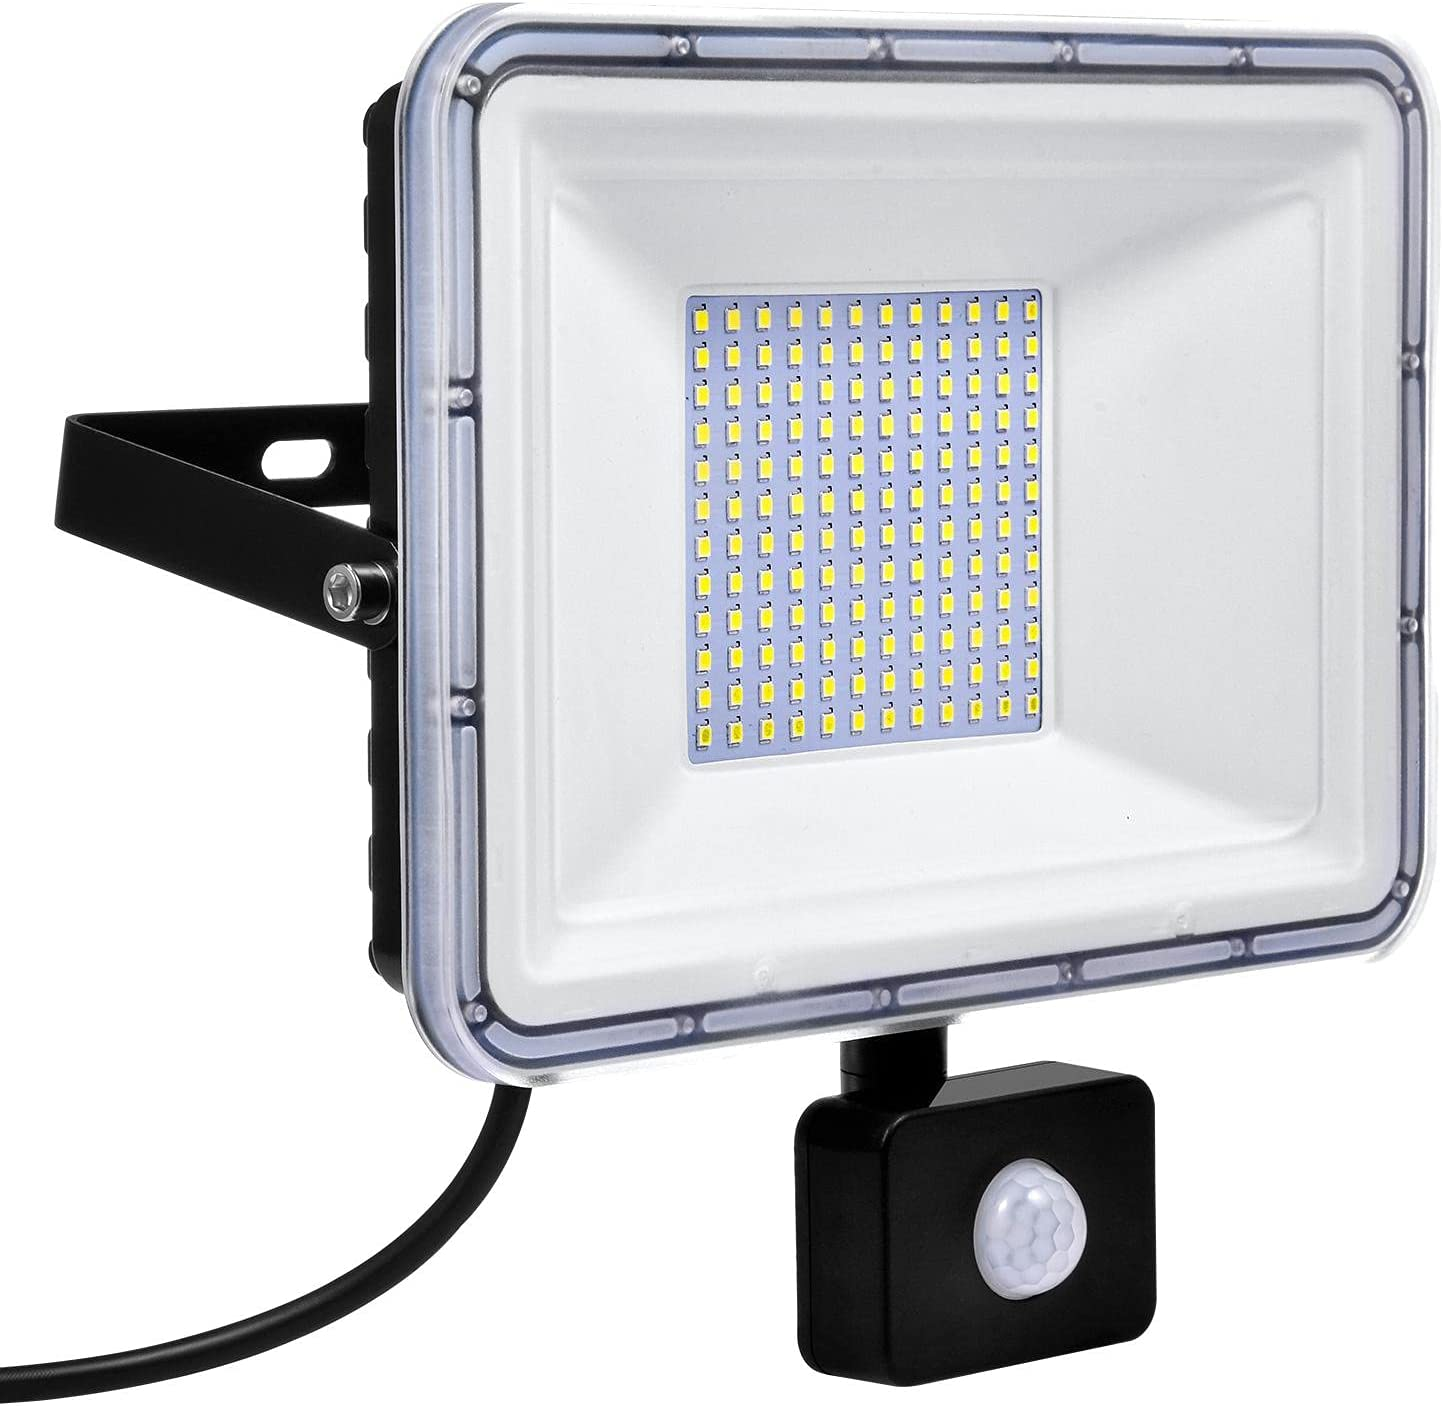 Topful LED Flood OFFicial shop Limited time trial price Light Outdoor Sensor Wat Motion Security